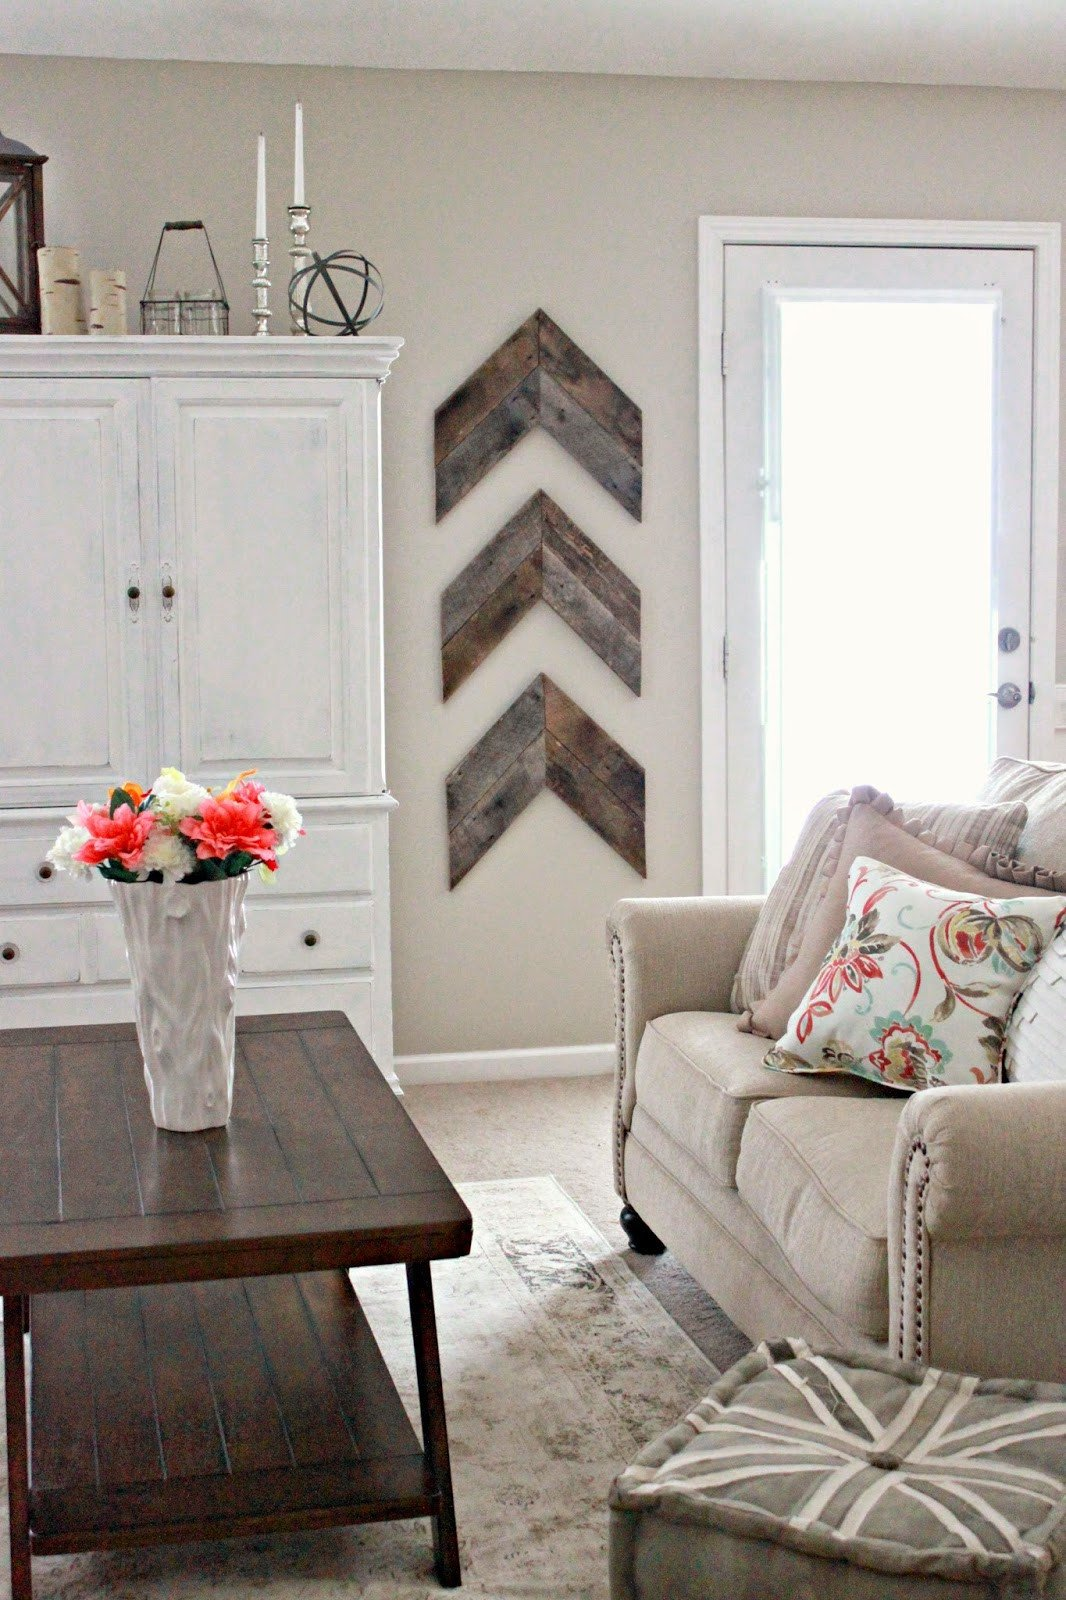 Diy Living Room Wall Decor Elegant 15 Striking Ways to Decorate with Arrows